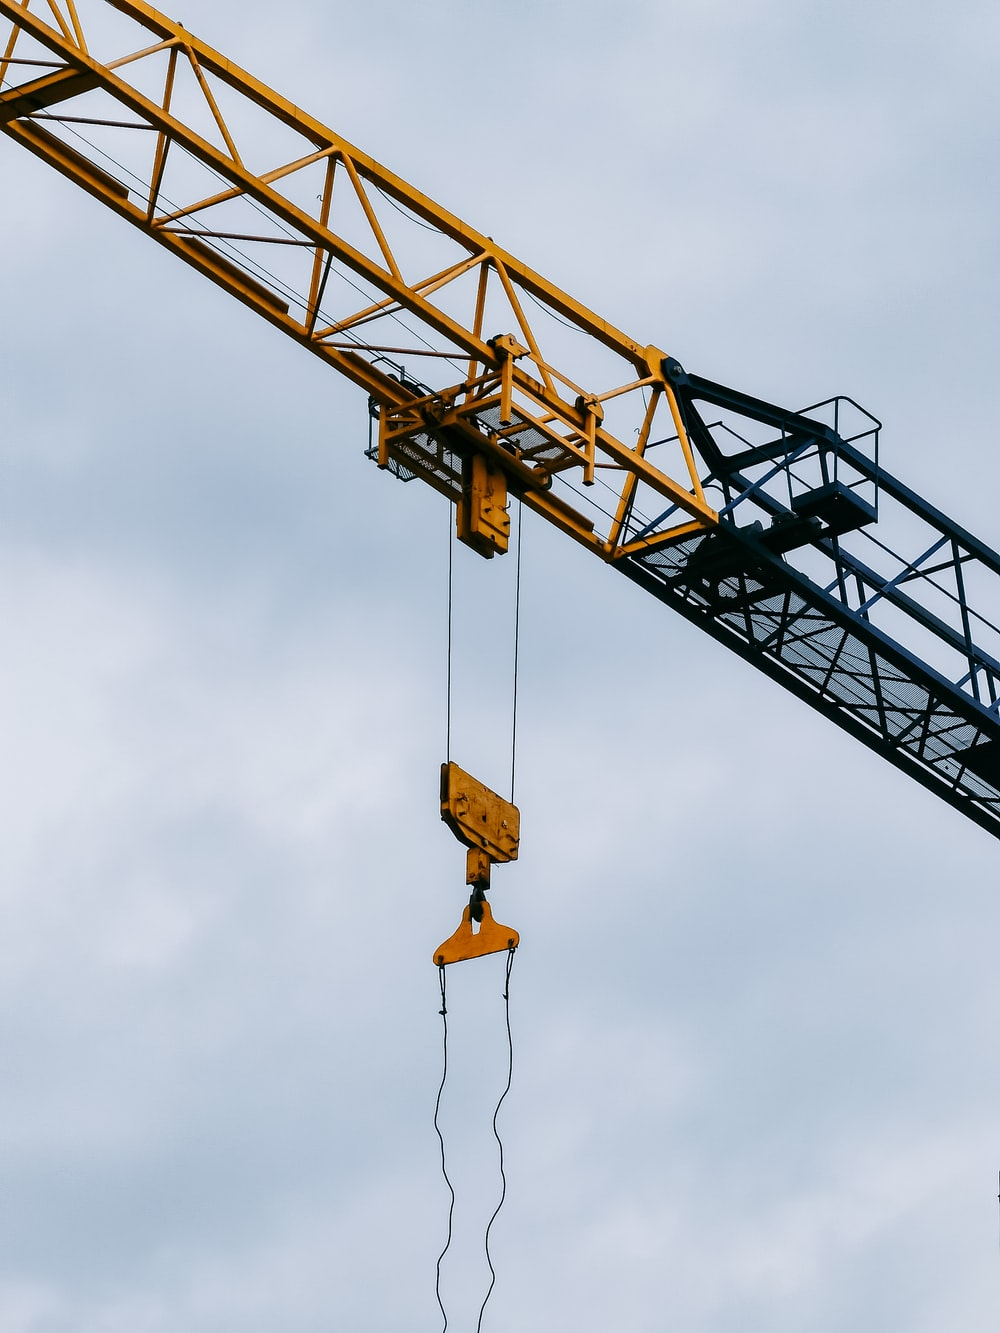 yellow crane under cloudy sky during daytime